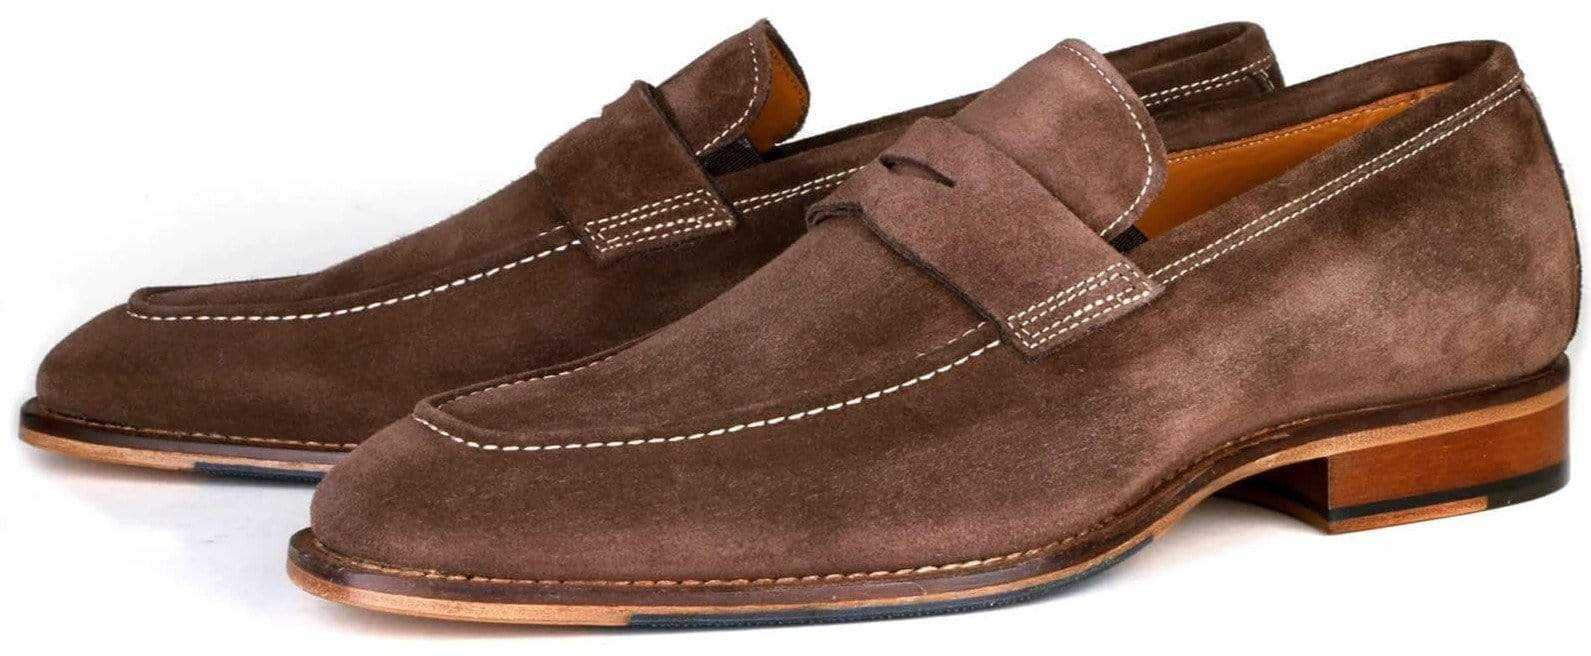 Hampton Penny Loafer - Brown Suede